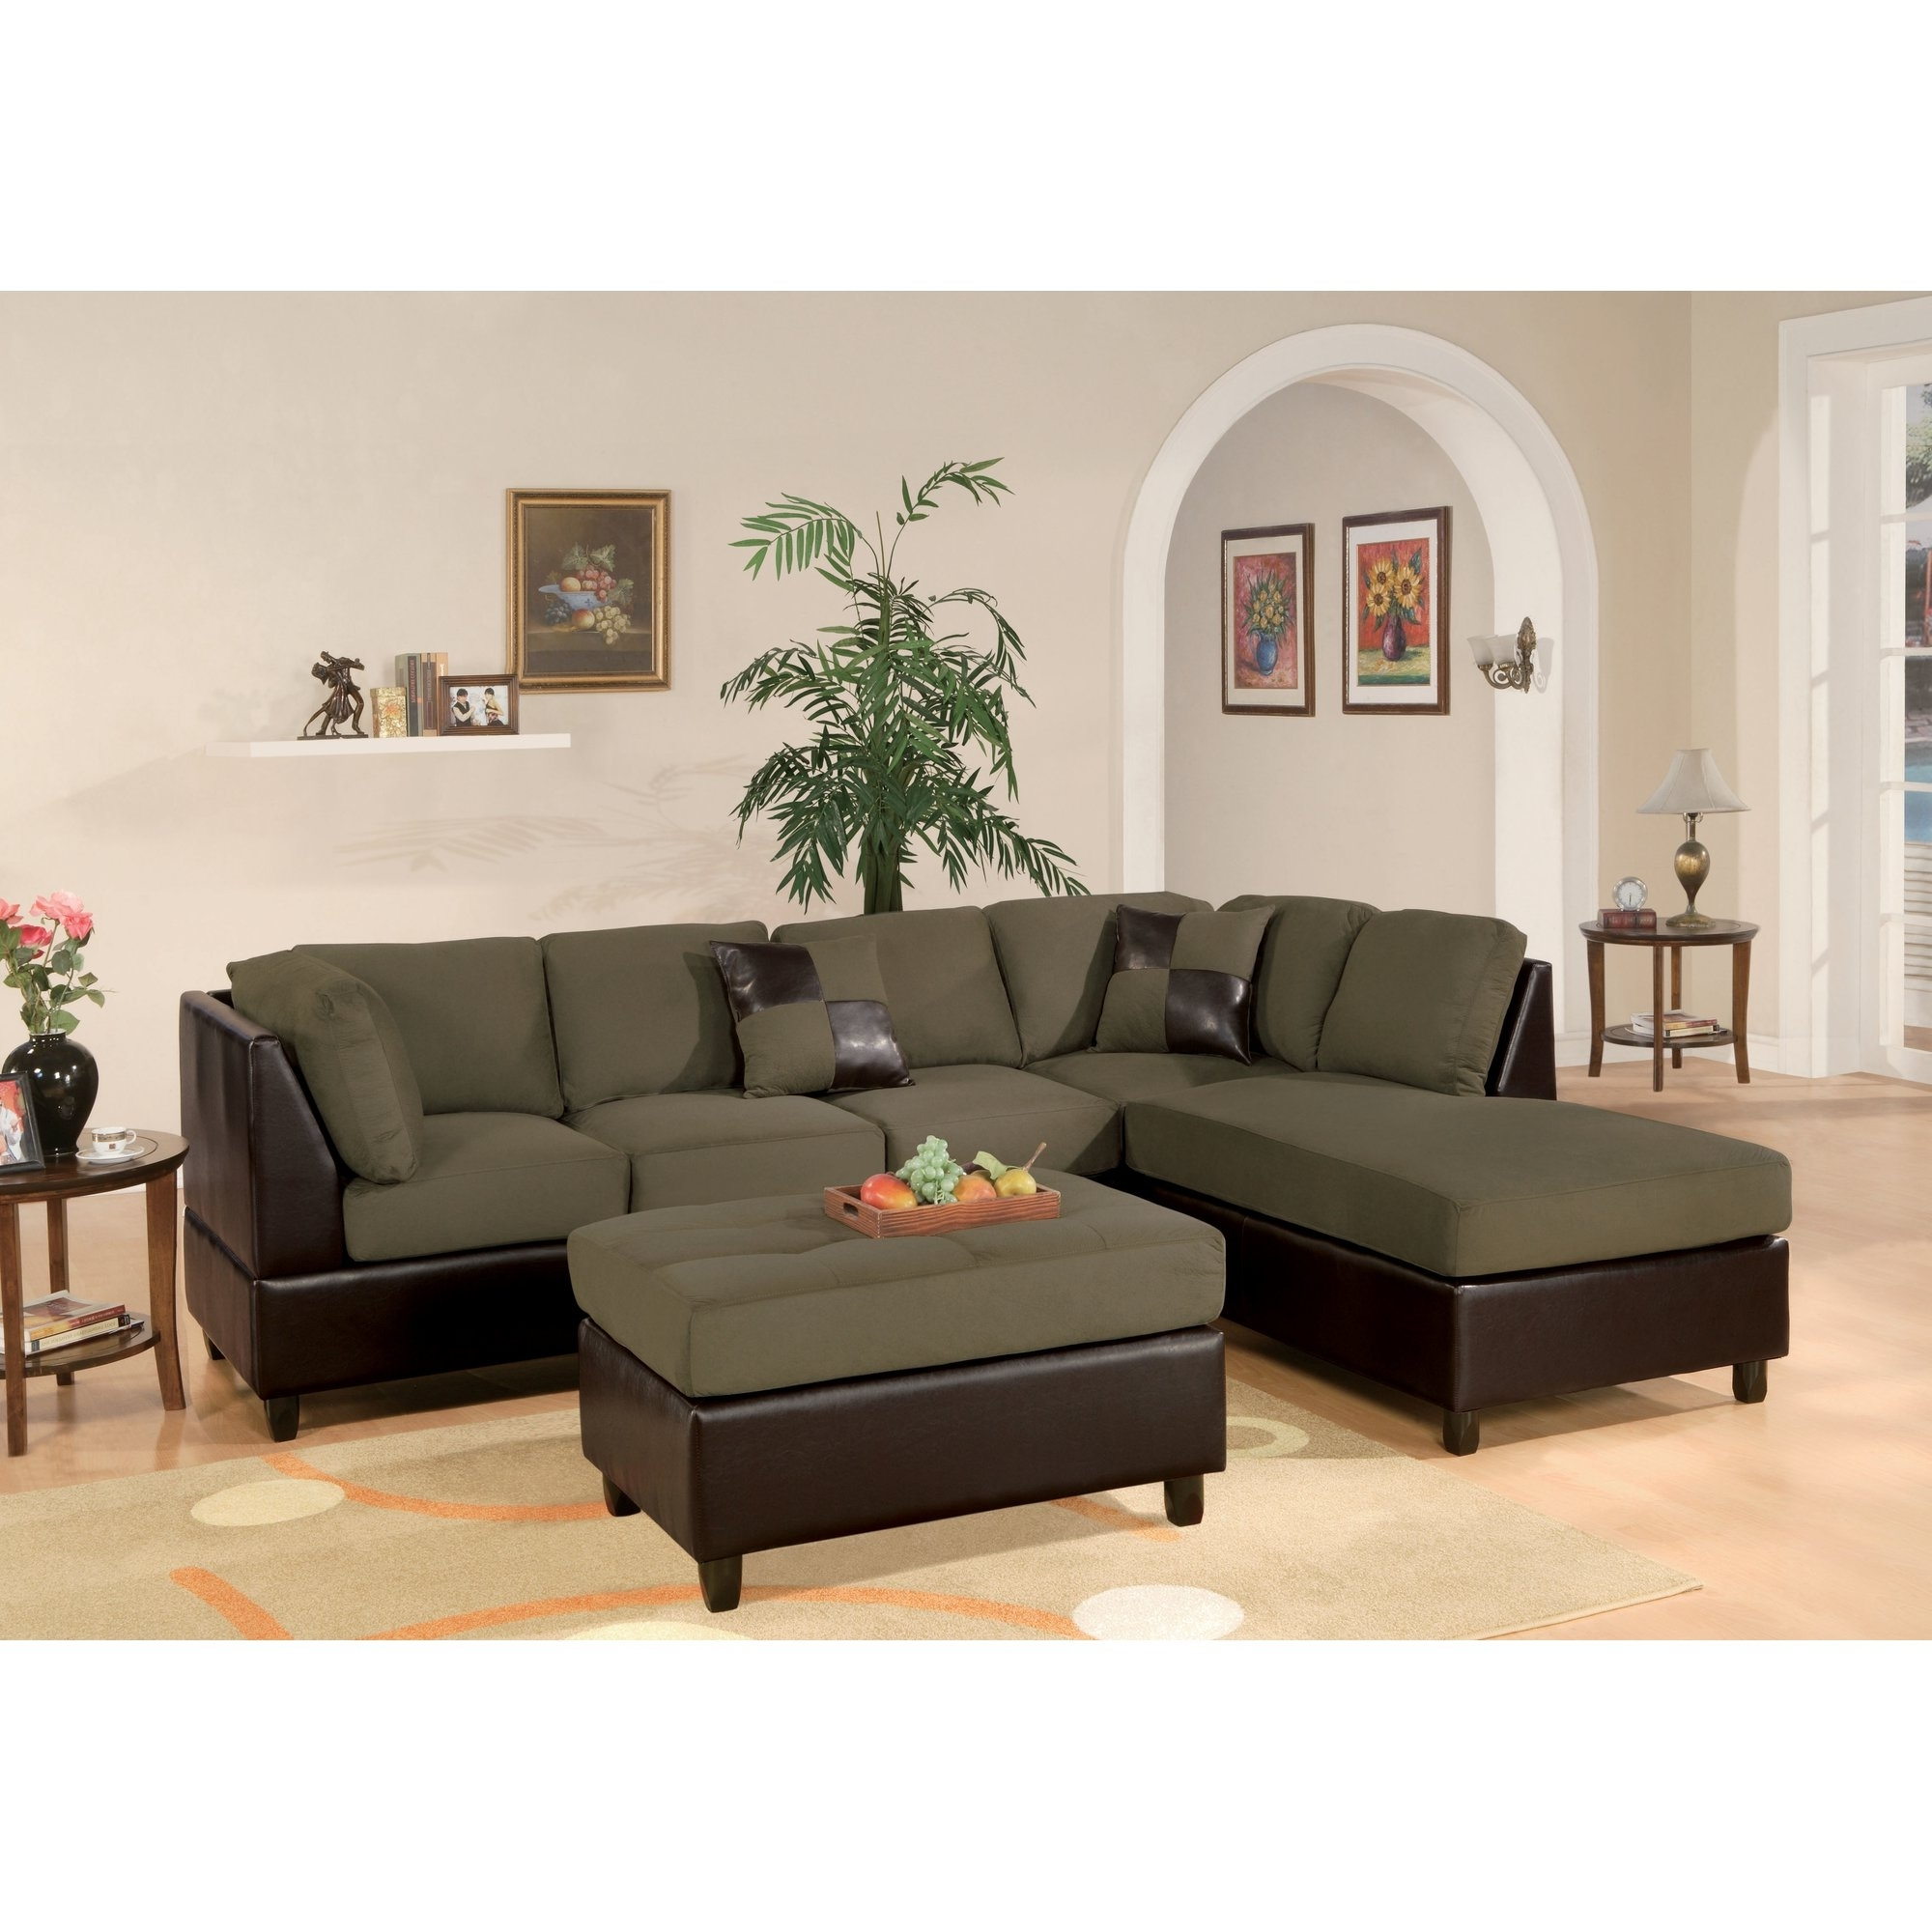 Furniture : Best Sectional Couch 2015 Large Sectional Sofas Uk Within Well Liked 80X80 Sectional Sofas (View 3 of 15)